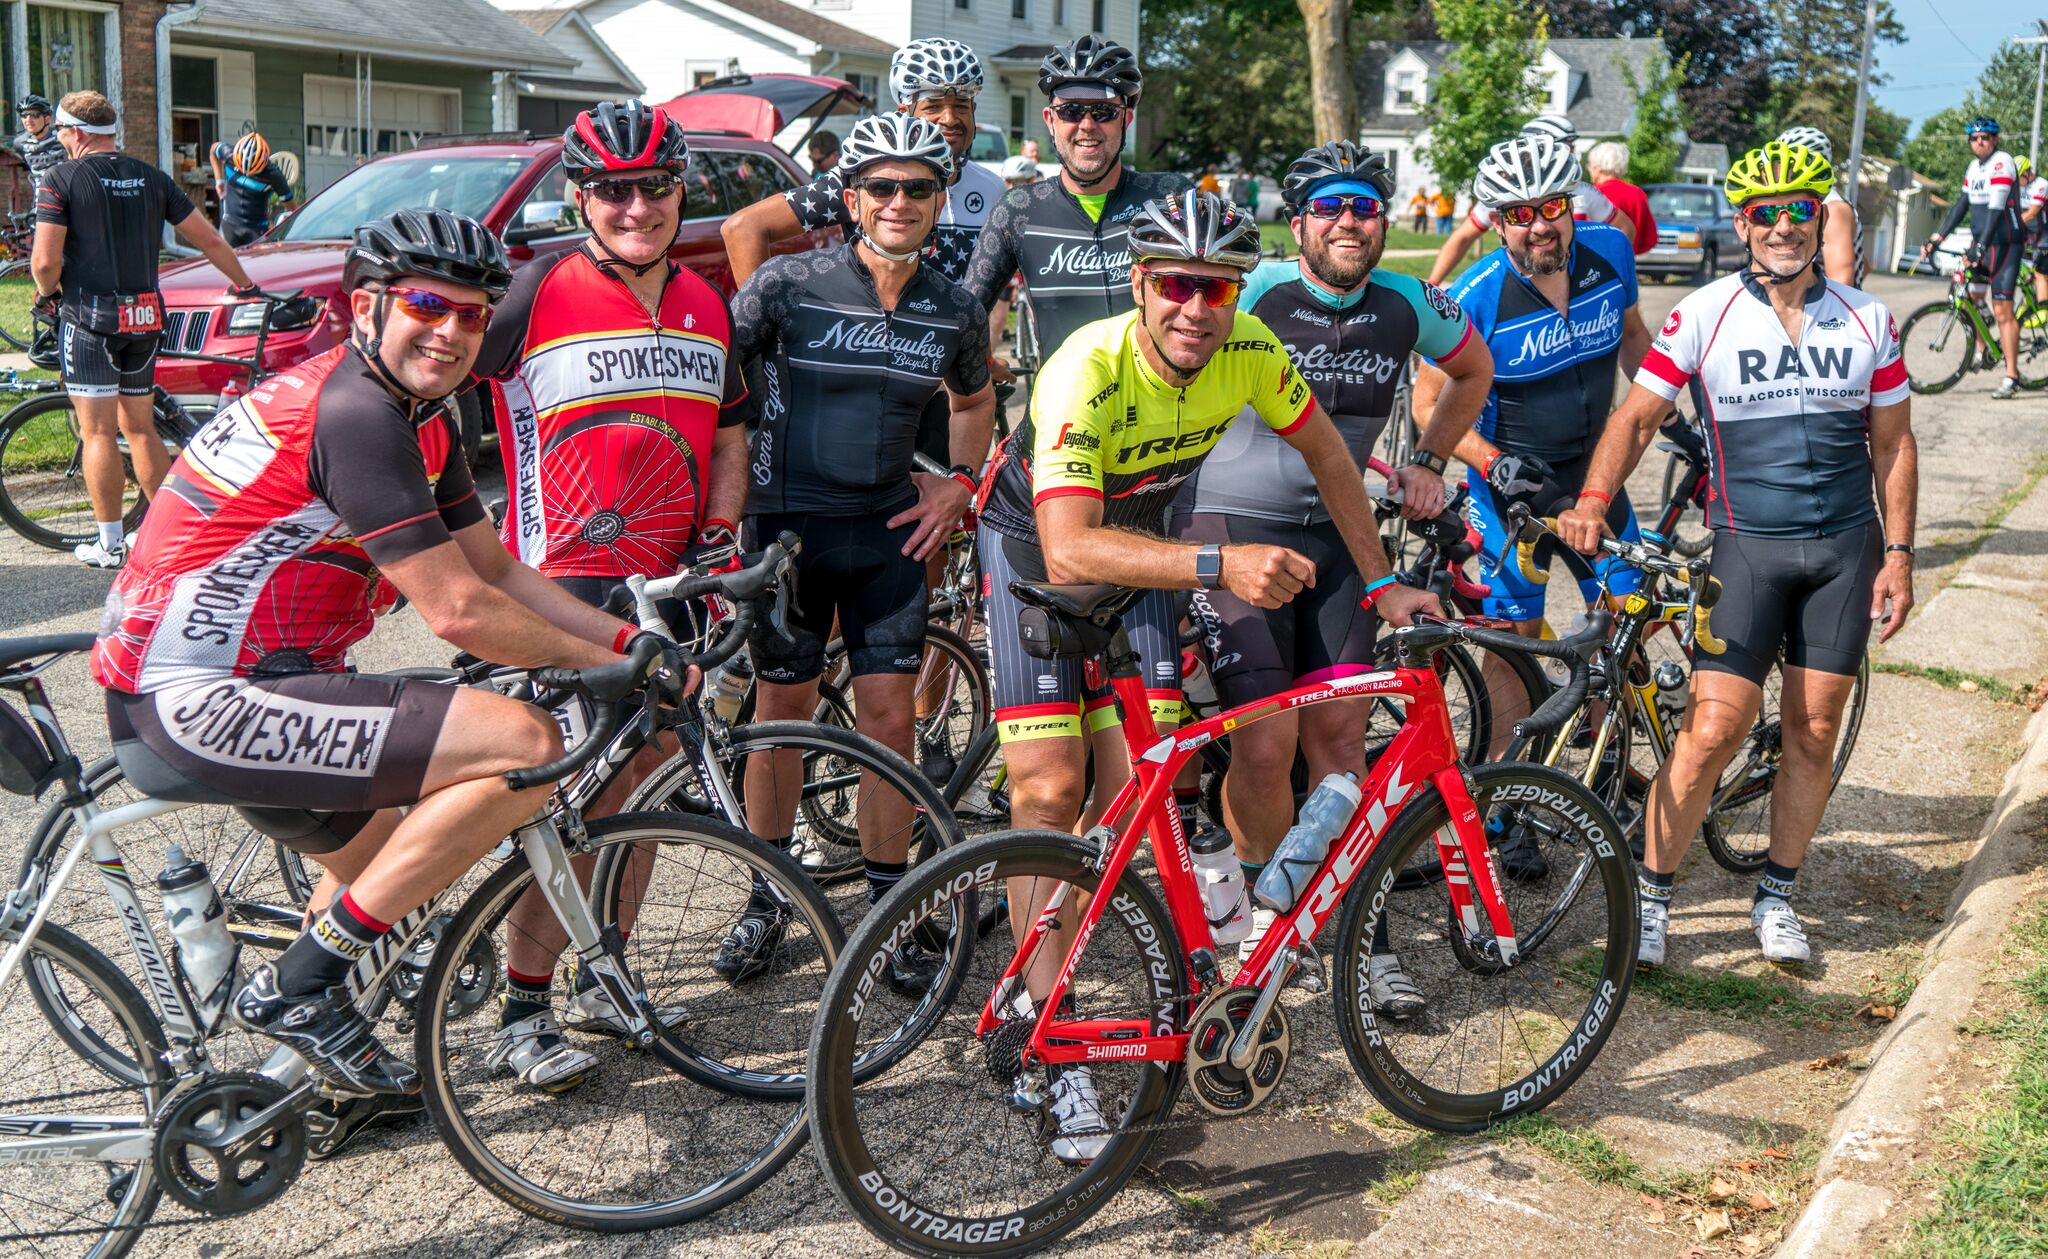 BEST People, Best Ride - The Ride Across Wisconsin attracts riders from around the country and world.